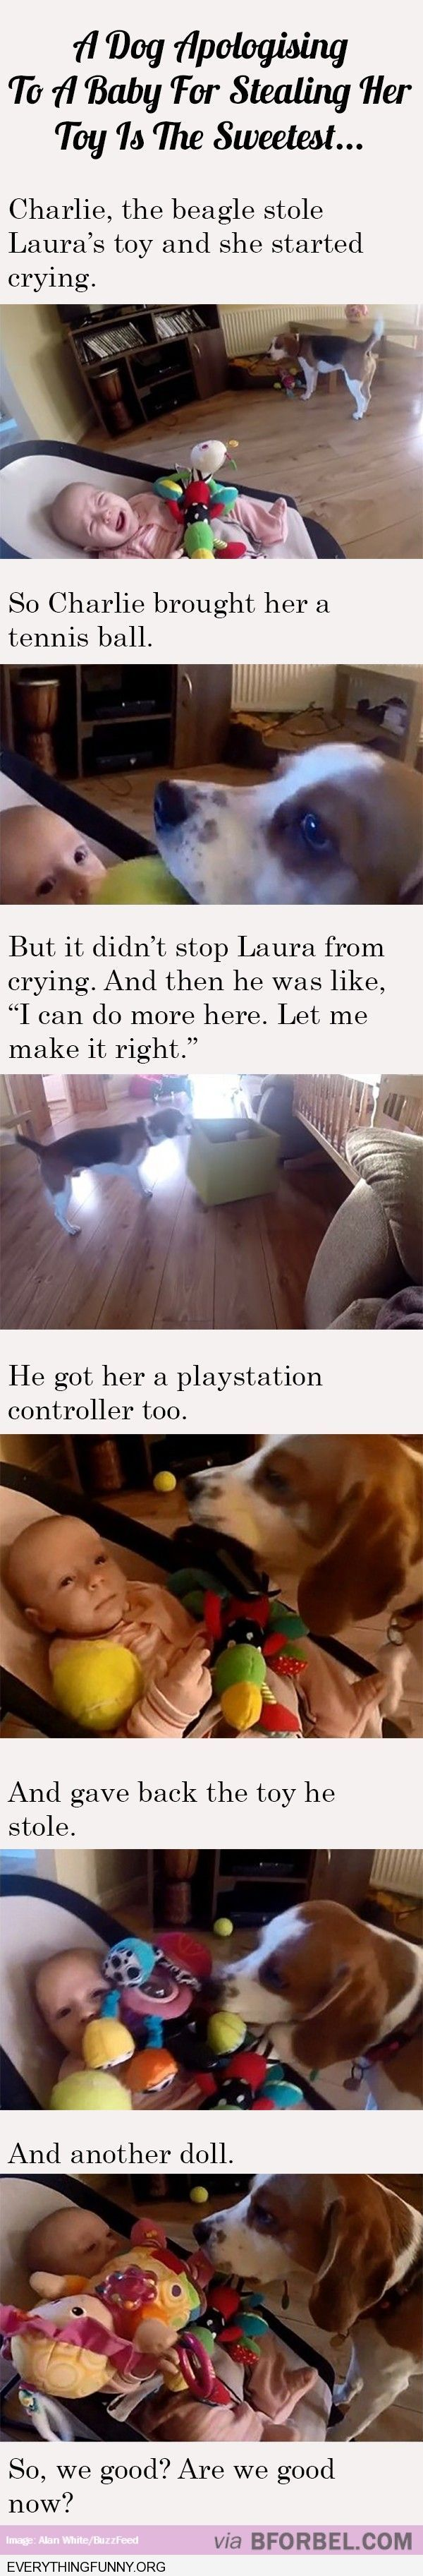 funny caption adorable dog took babies toy brings the baby everything it can to make it happy again